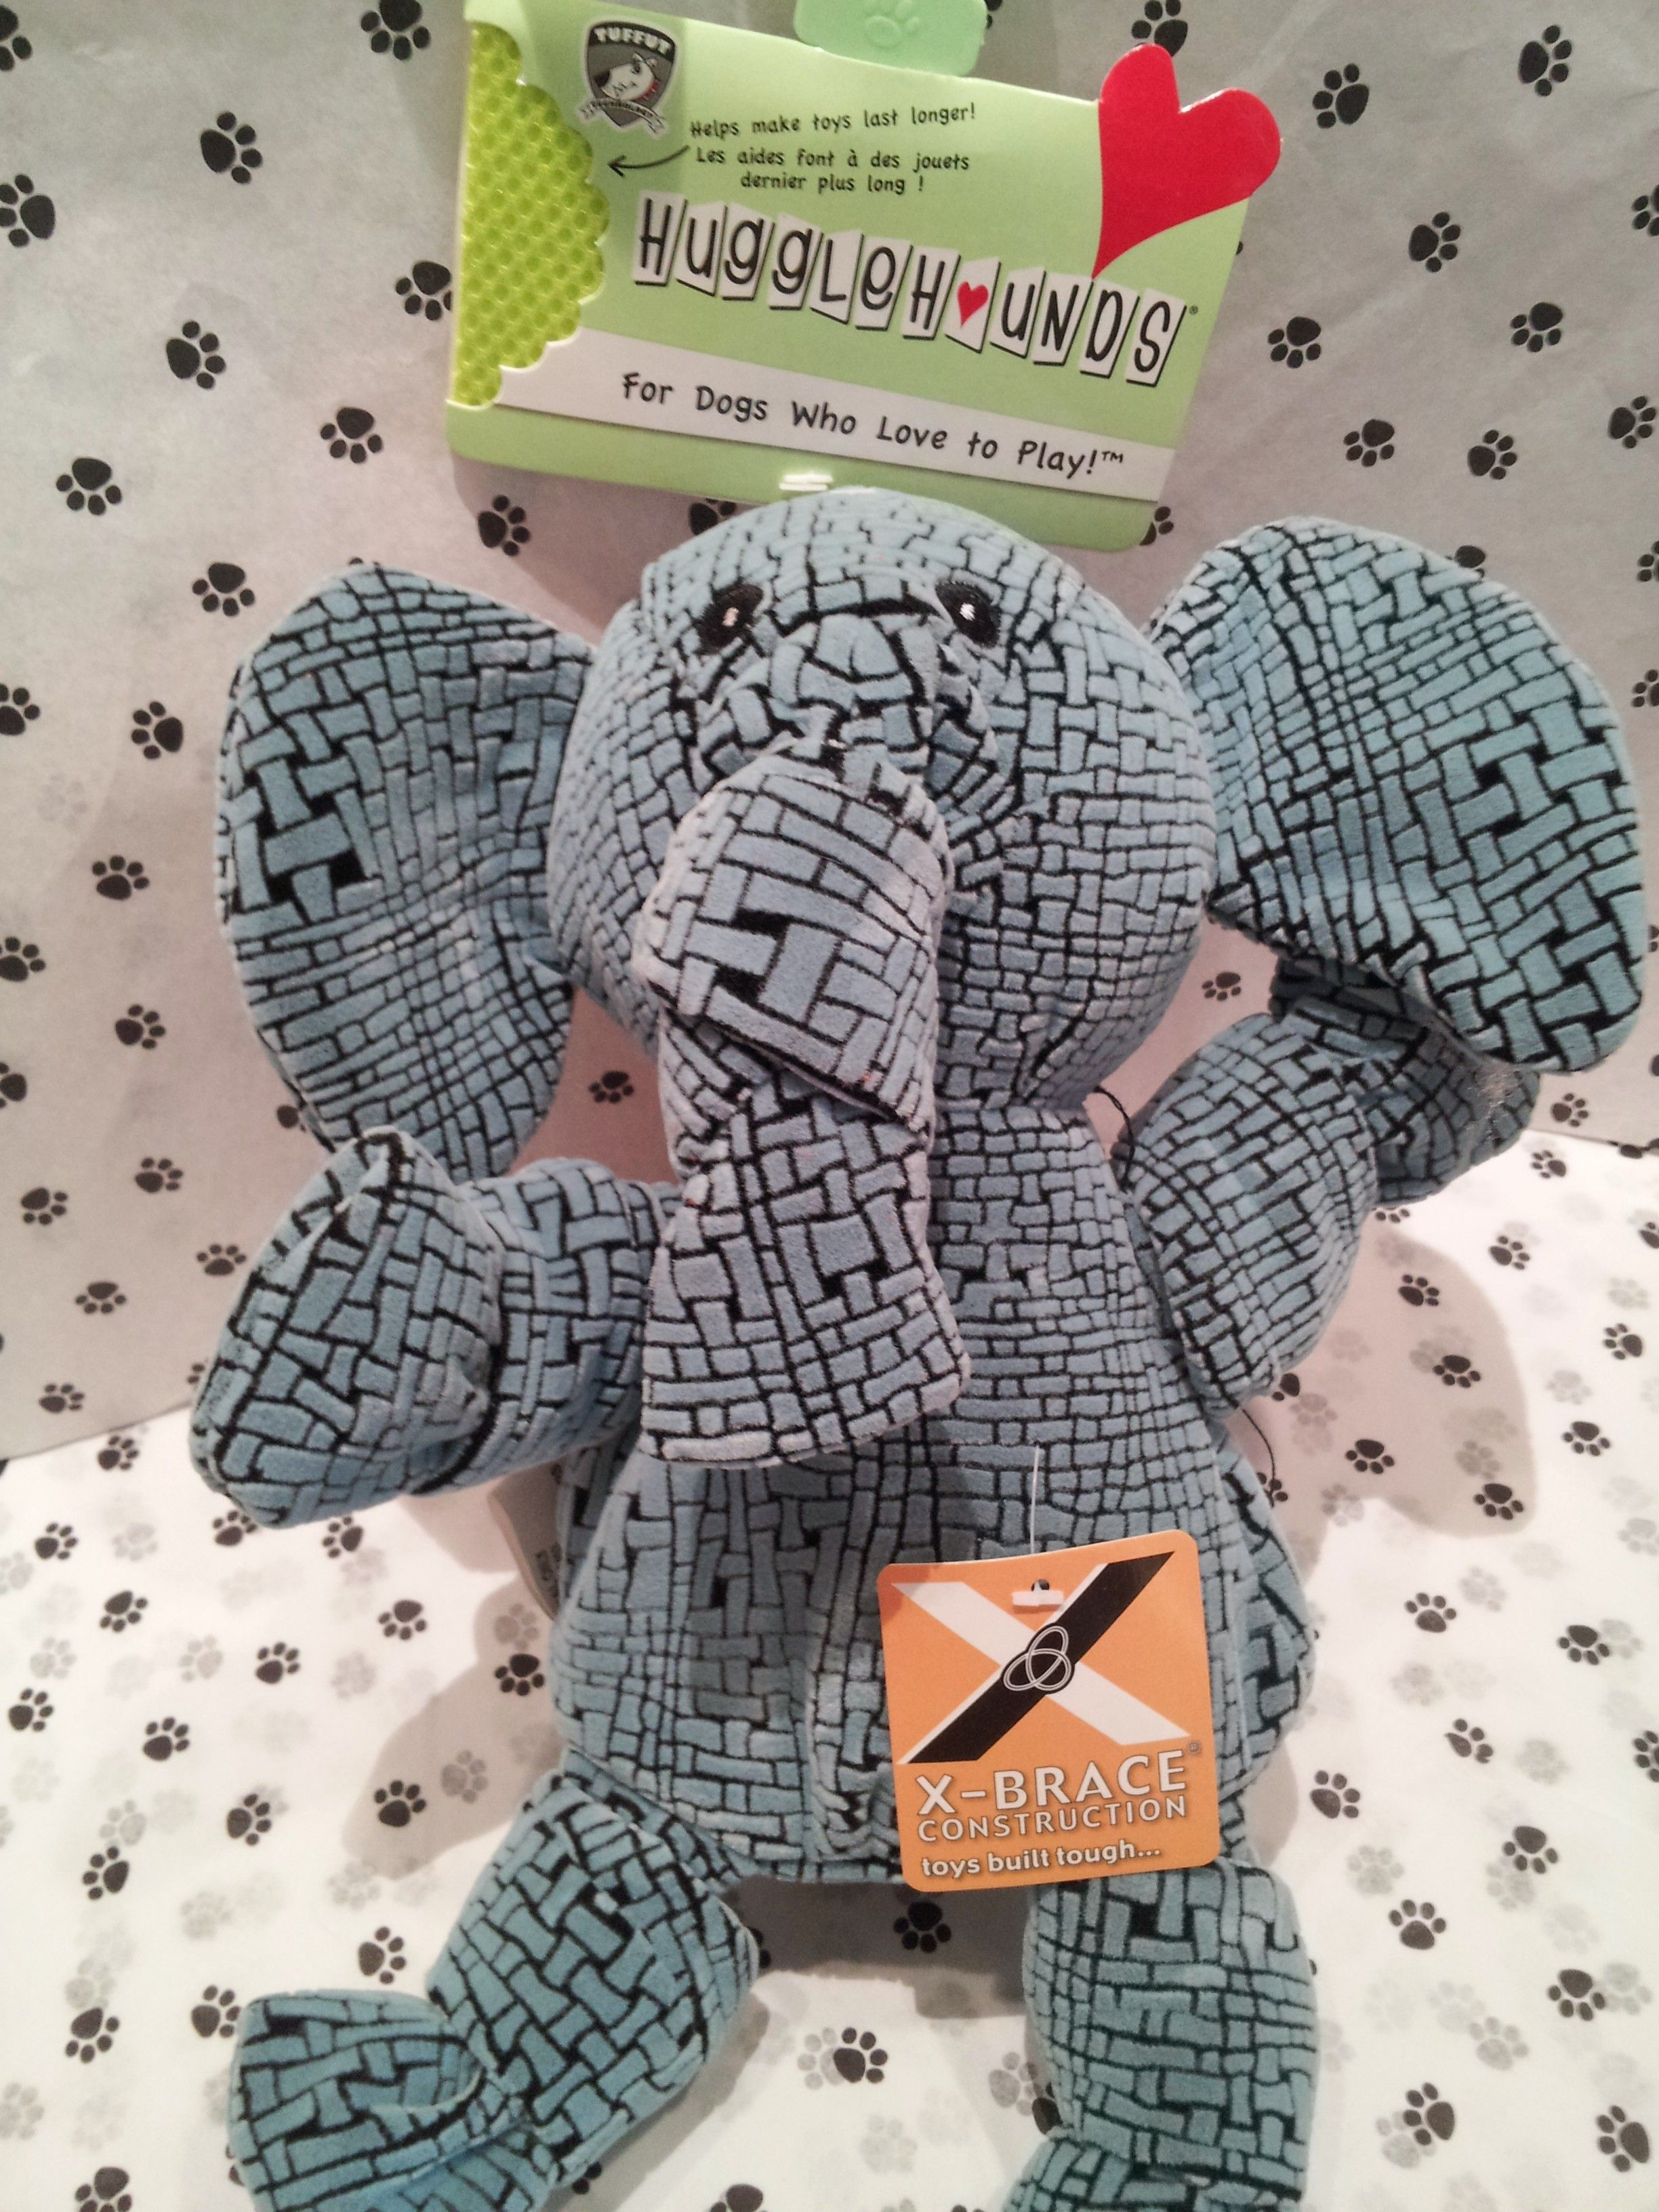 Huggle Hounds Elephant with X-Brace Construction... This guy is super tough, great choice for a hard chewer!! #GodfreysDogdom